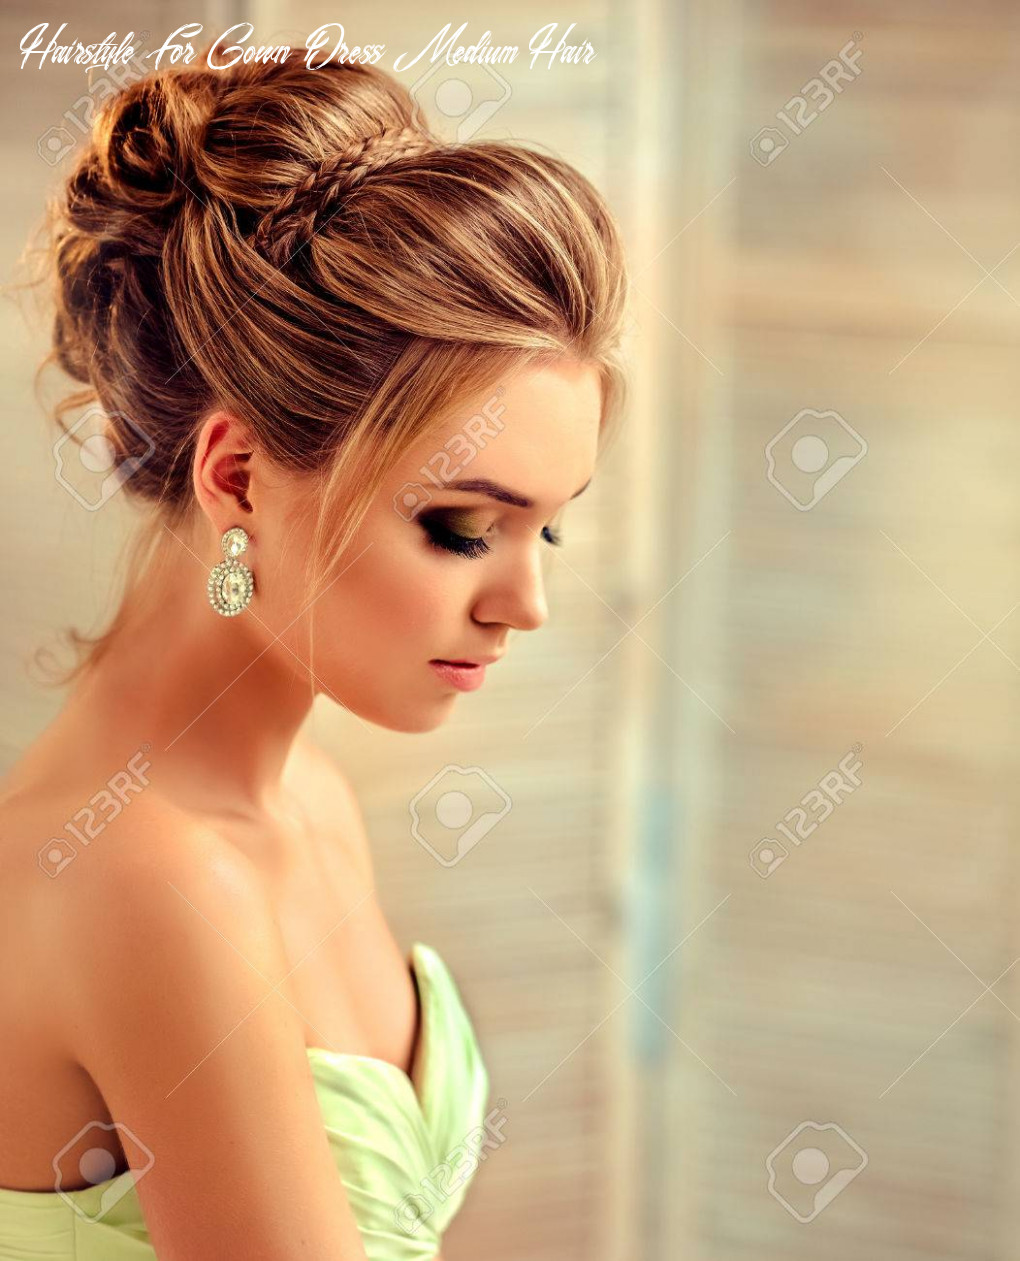 Gown hairstyles – fashion dresses hairstyle for gown dress medium hair